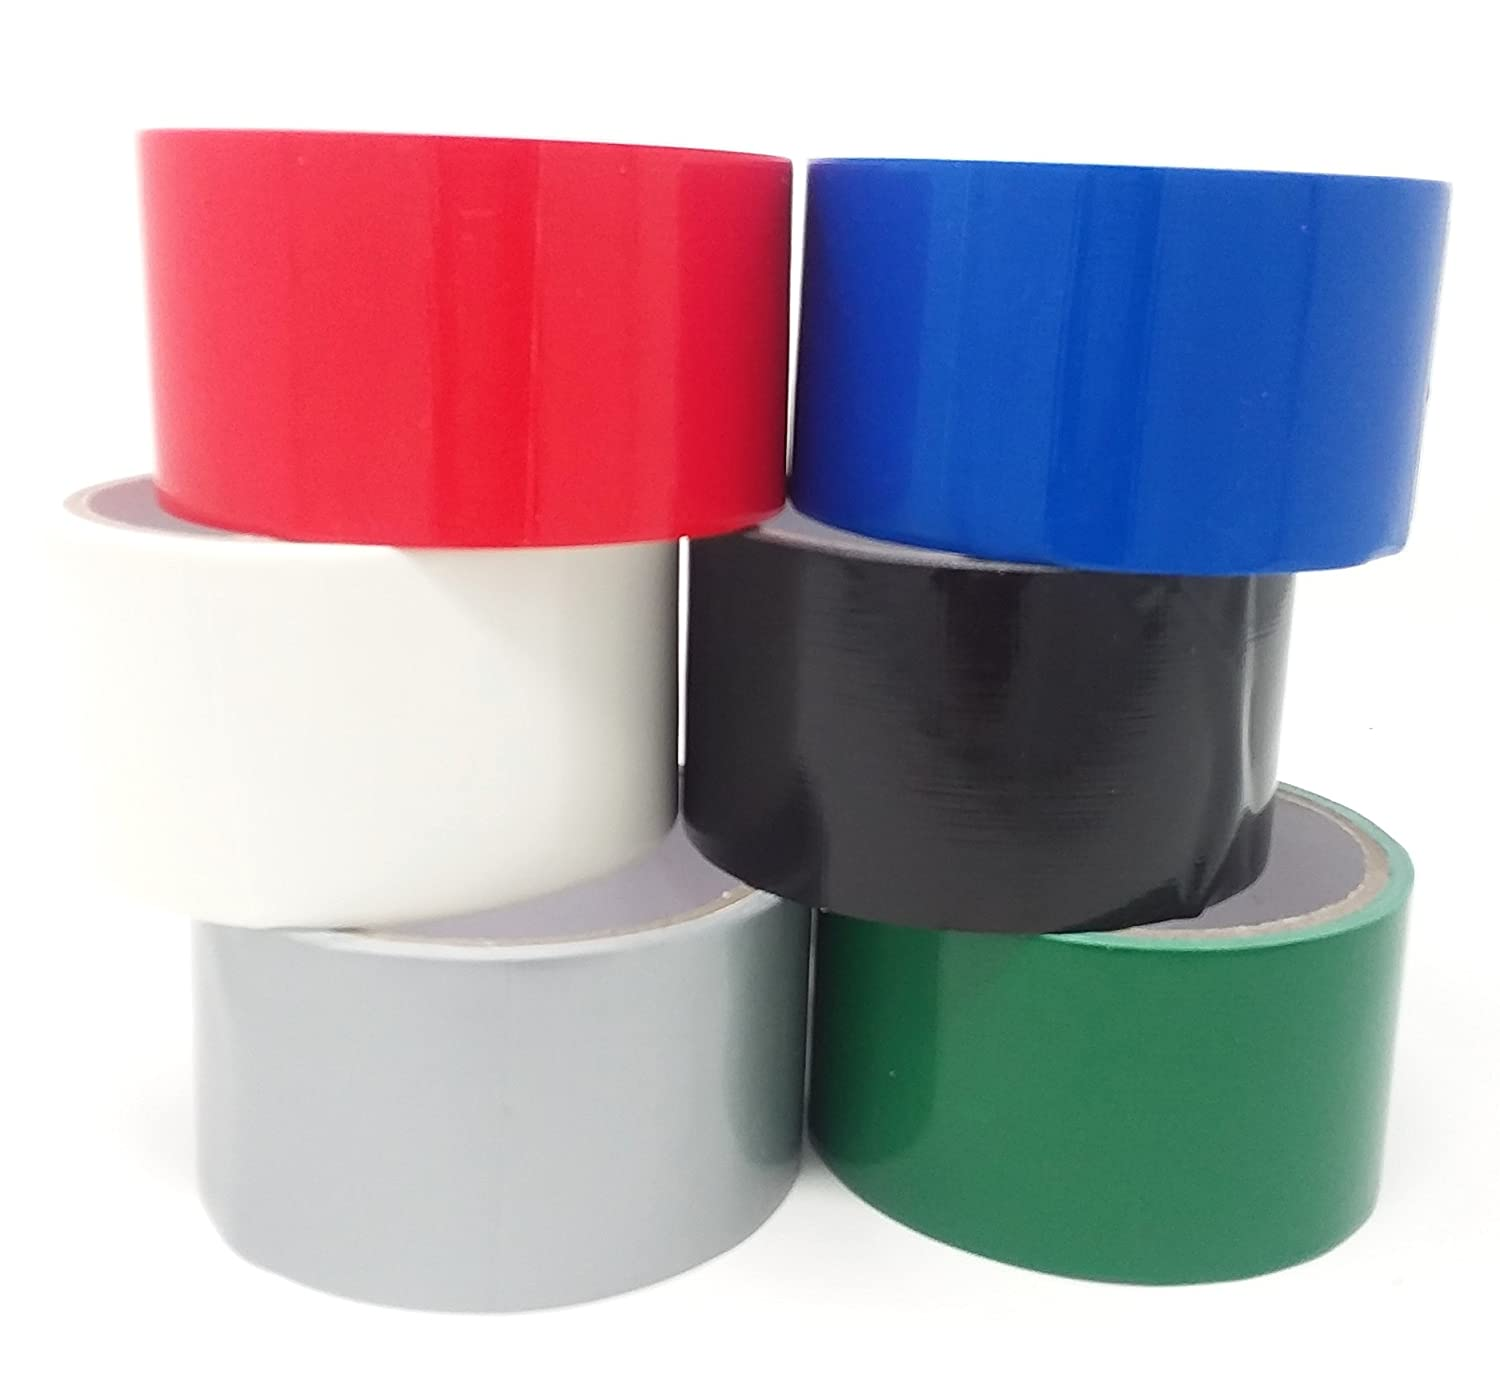 24 Rolls of Creative Assorted Safety and trust 67% OFF fixed price Colored Duct RED White Blue Tape